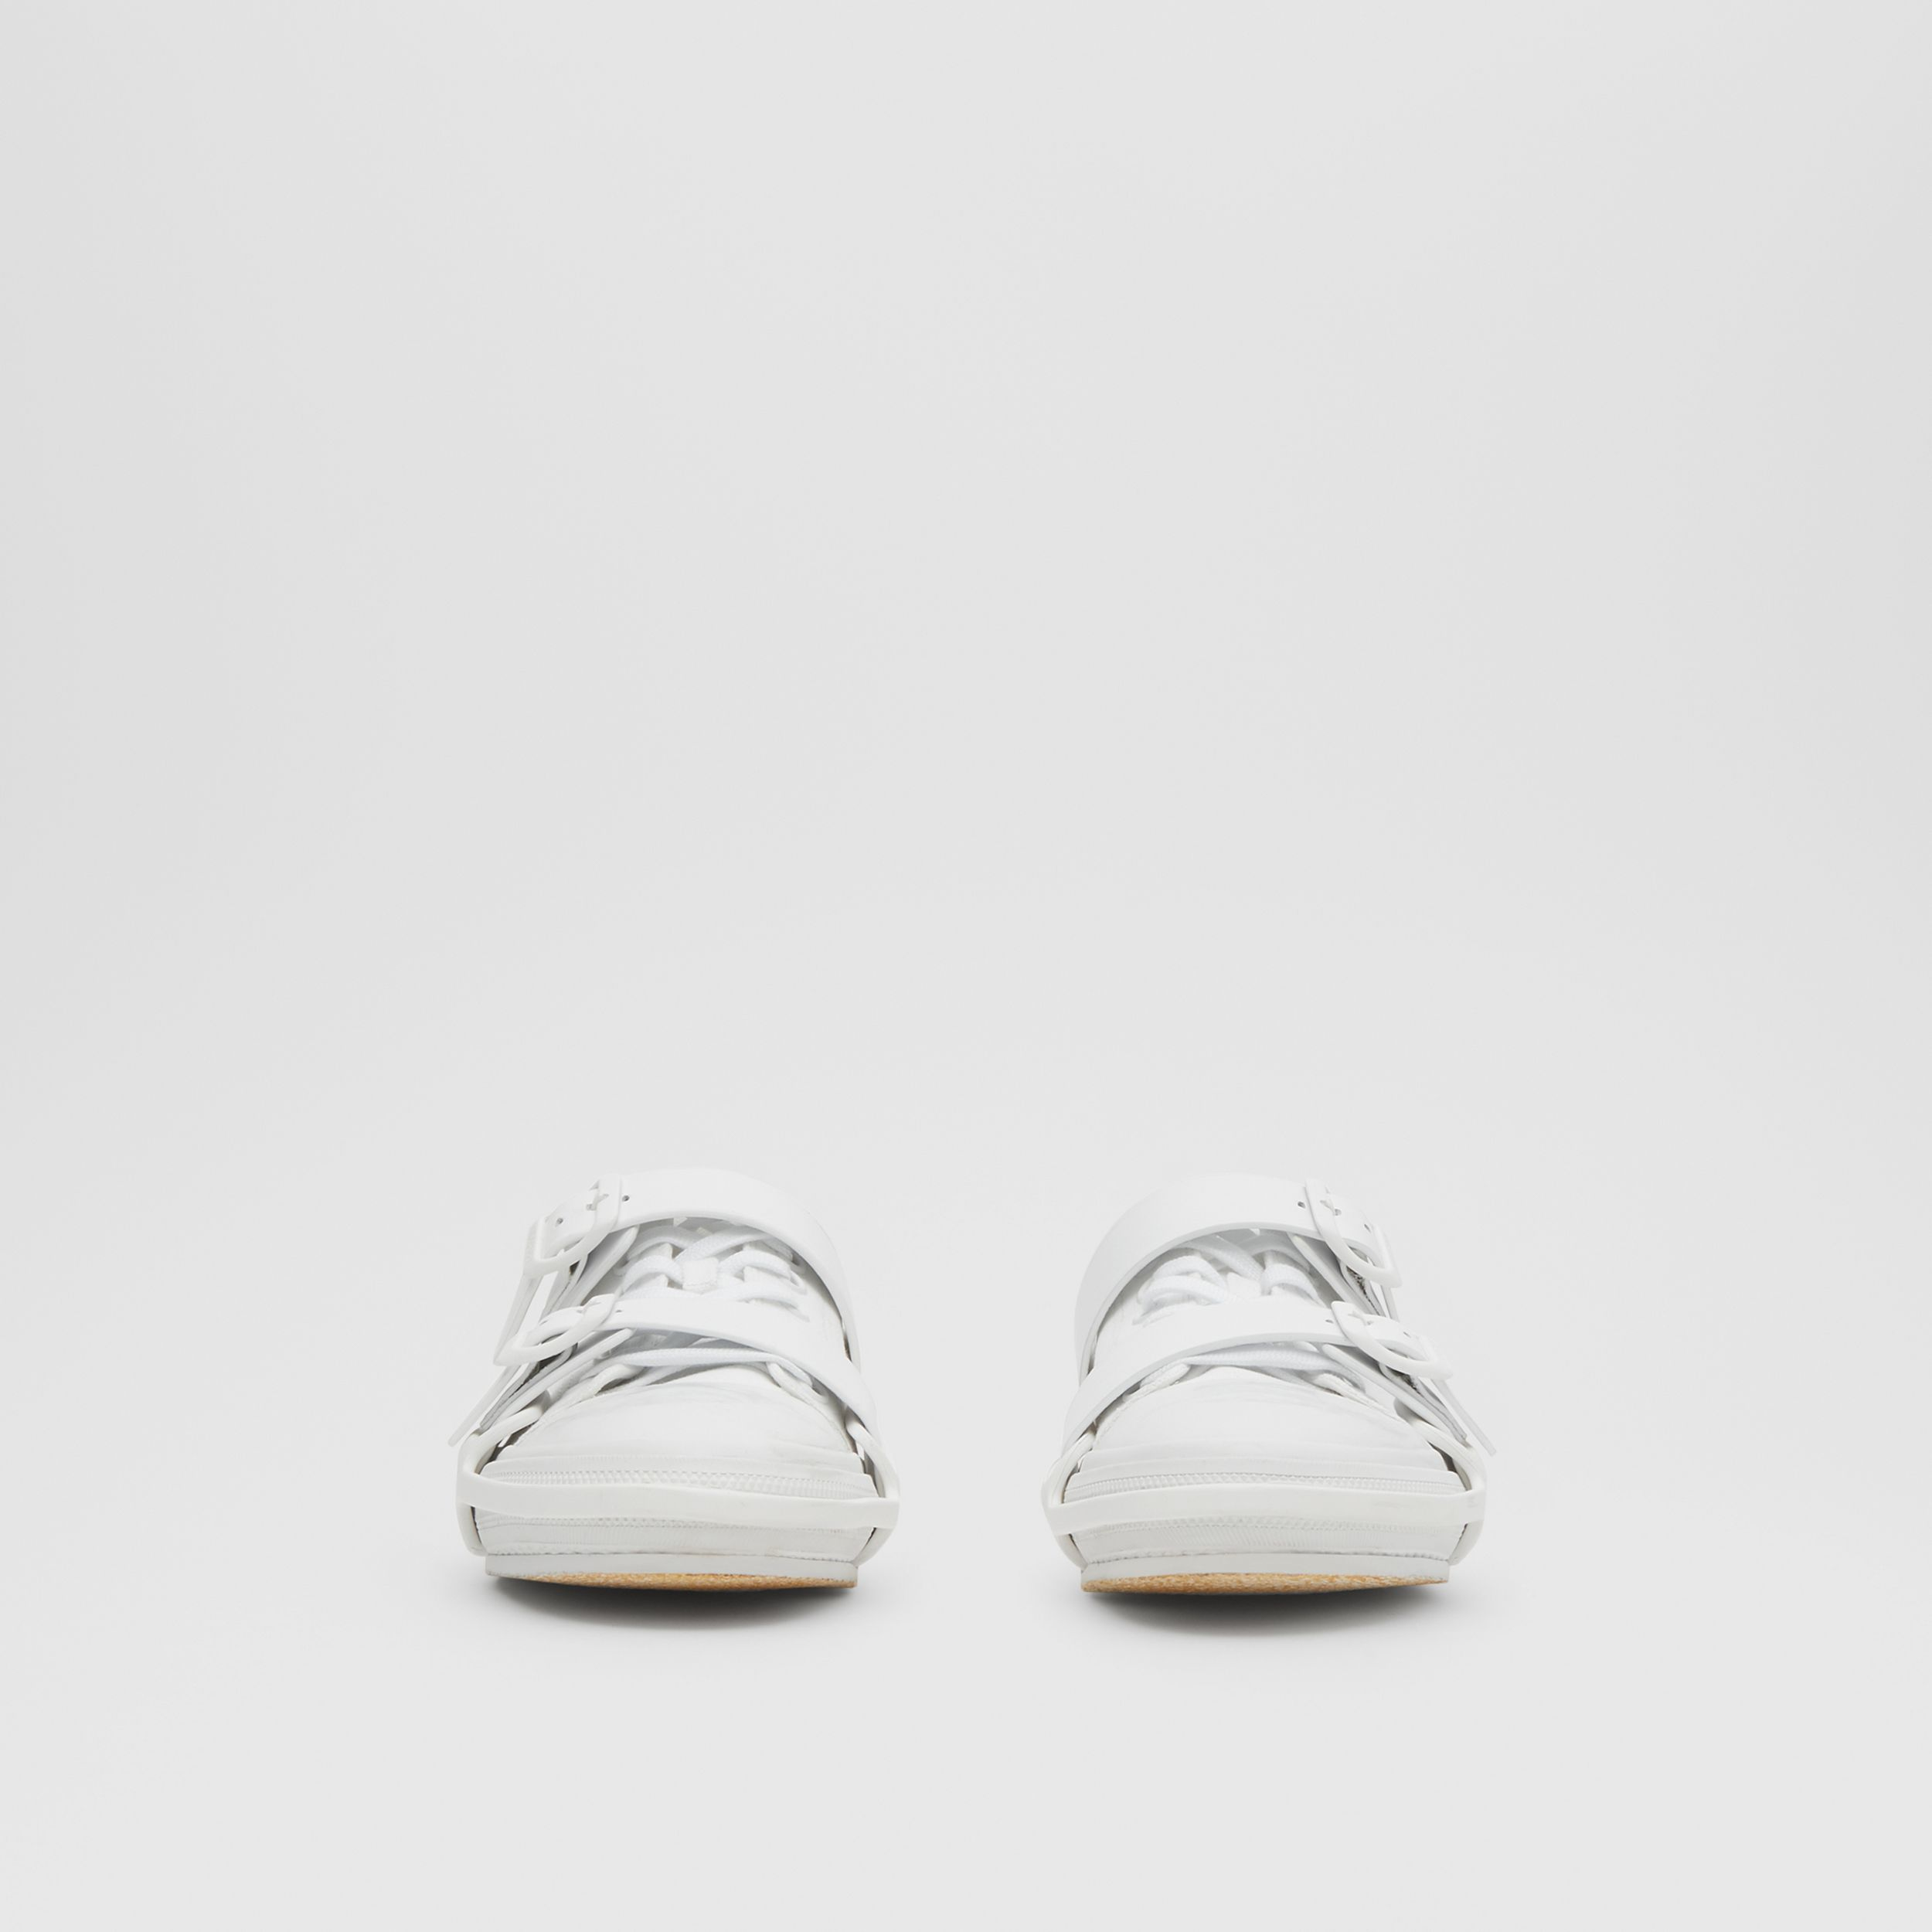 Cotton and Leather Webb Sneakers in White | Burberry - 4